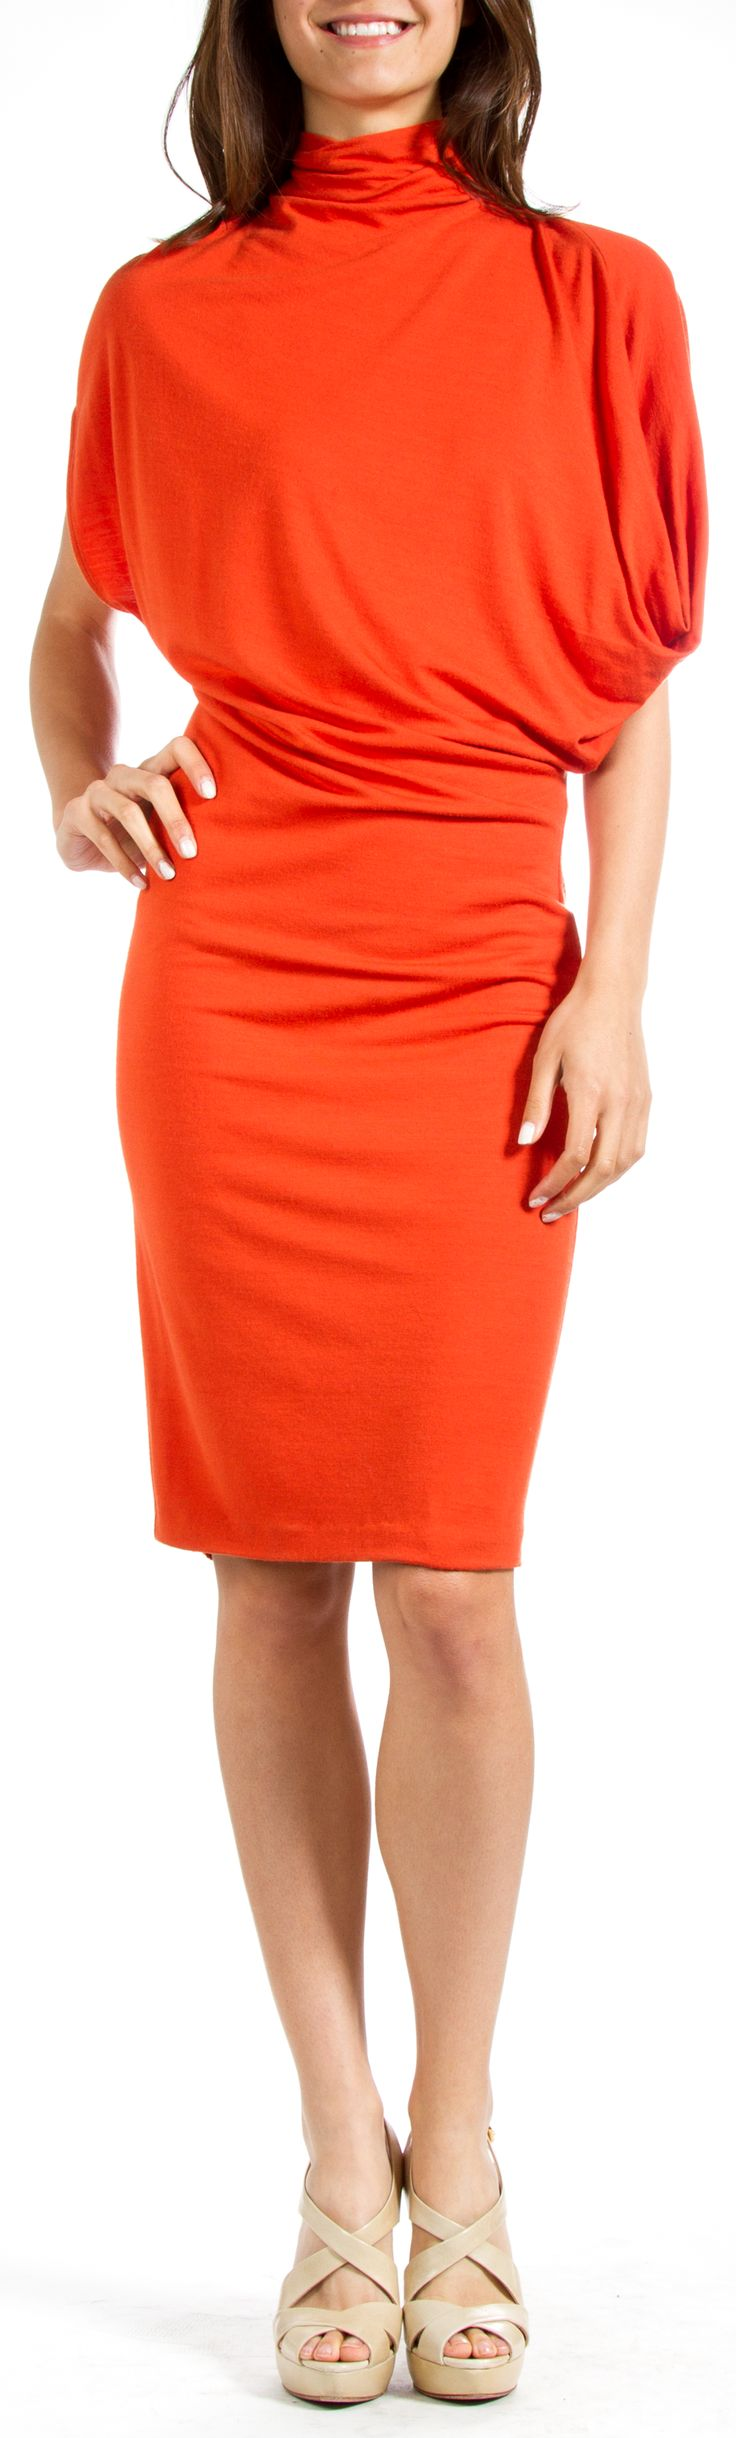 Stella McCartney Orange Dolman Dress - Bright hues make a bold statement in Spring, and an orange hue like this is easily transitional from season to season. Fits oversized.